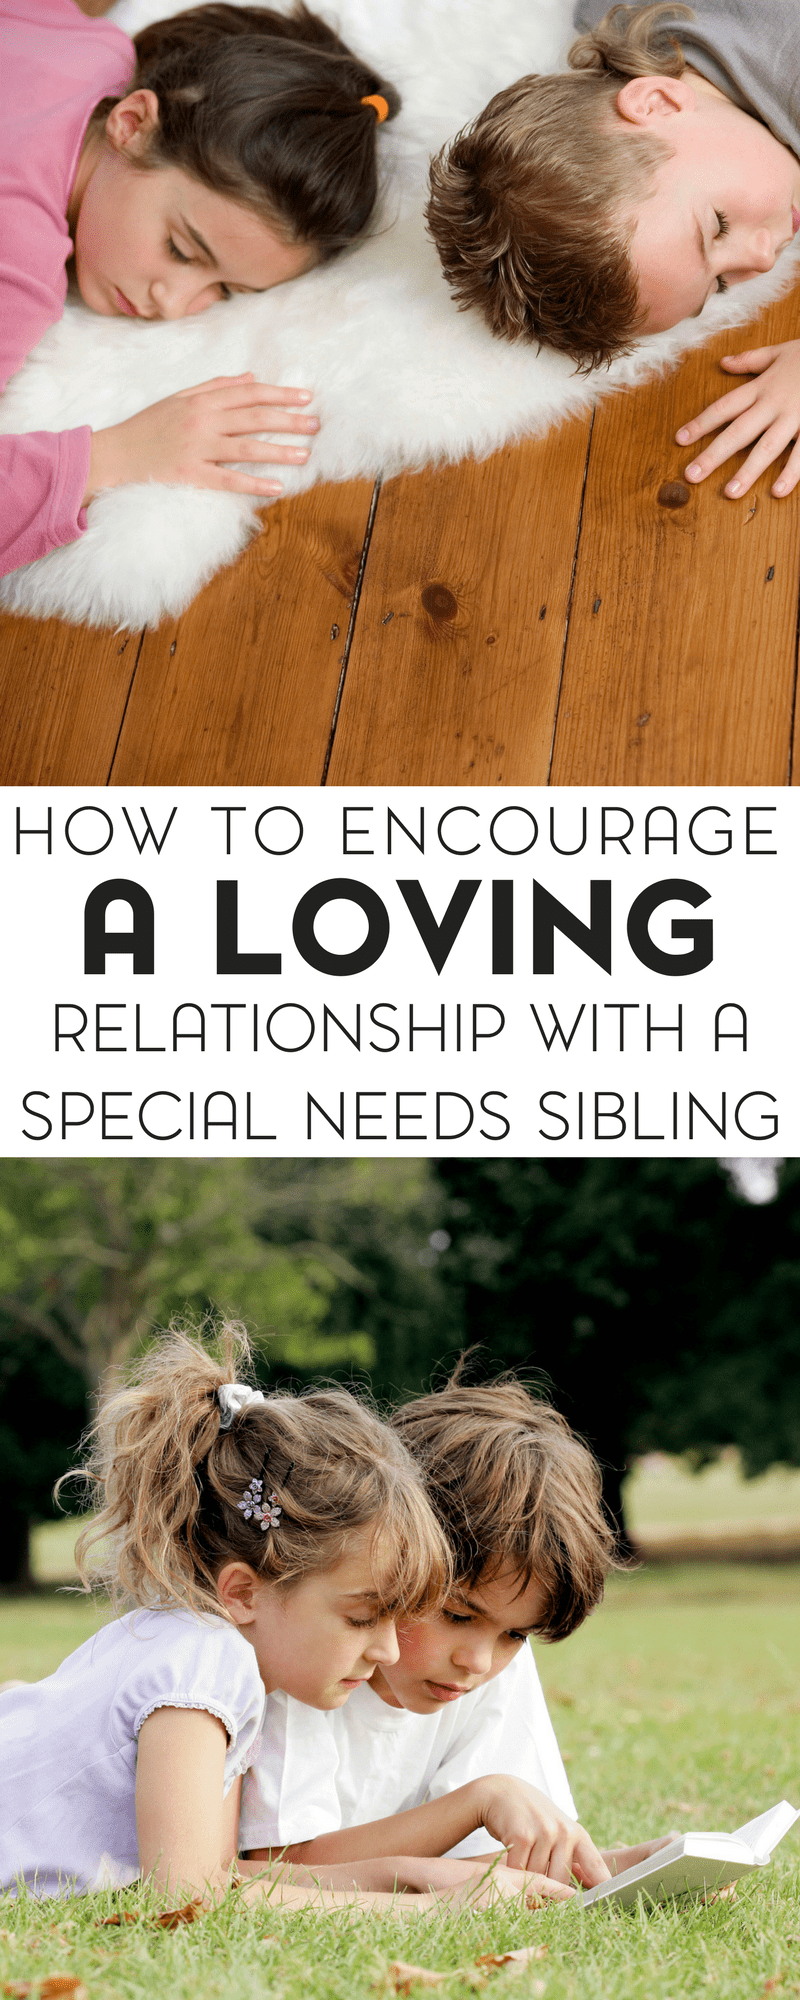 If you have children with and without special needs, be sure to check out these five tips for how to encourage a loving relationship with a special needs sibling.